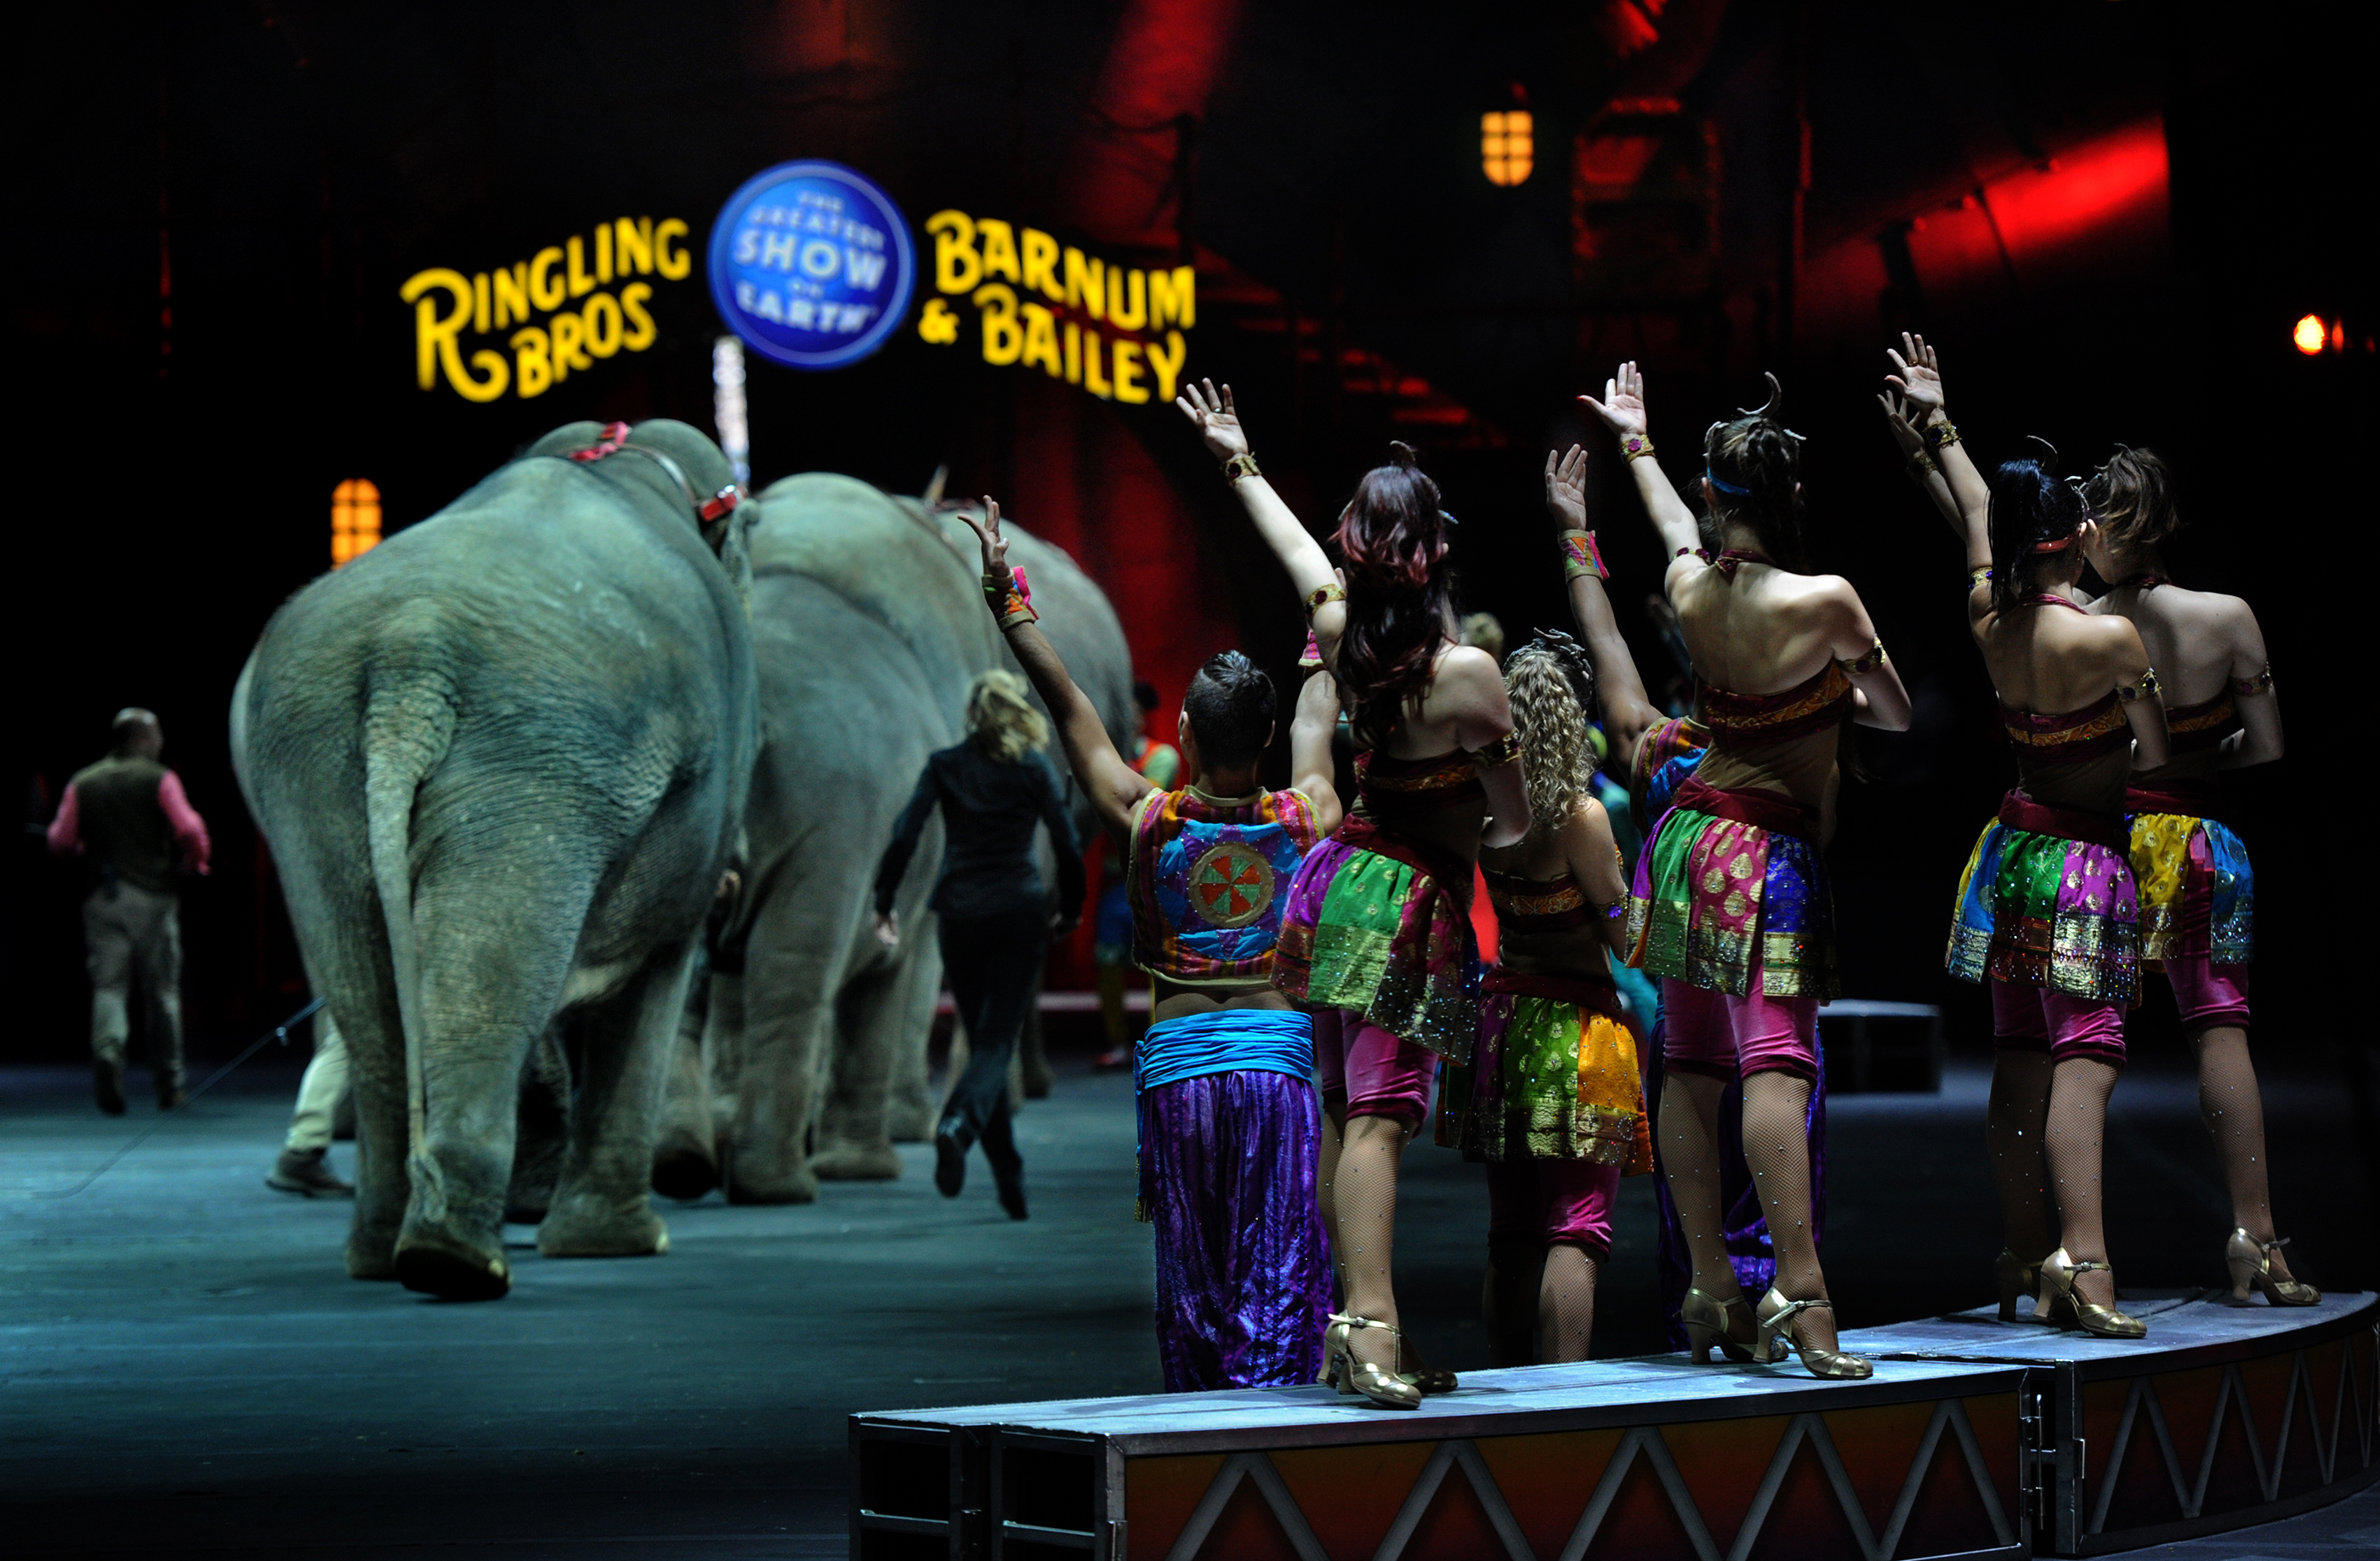 A group of Ringling Bros. performers wave goodbye as the elephants leave the Mohegan Sun Arena in Wilkes-Barre, Pa.